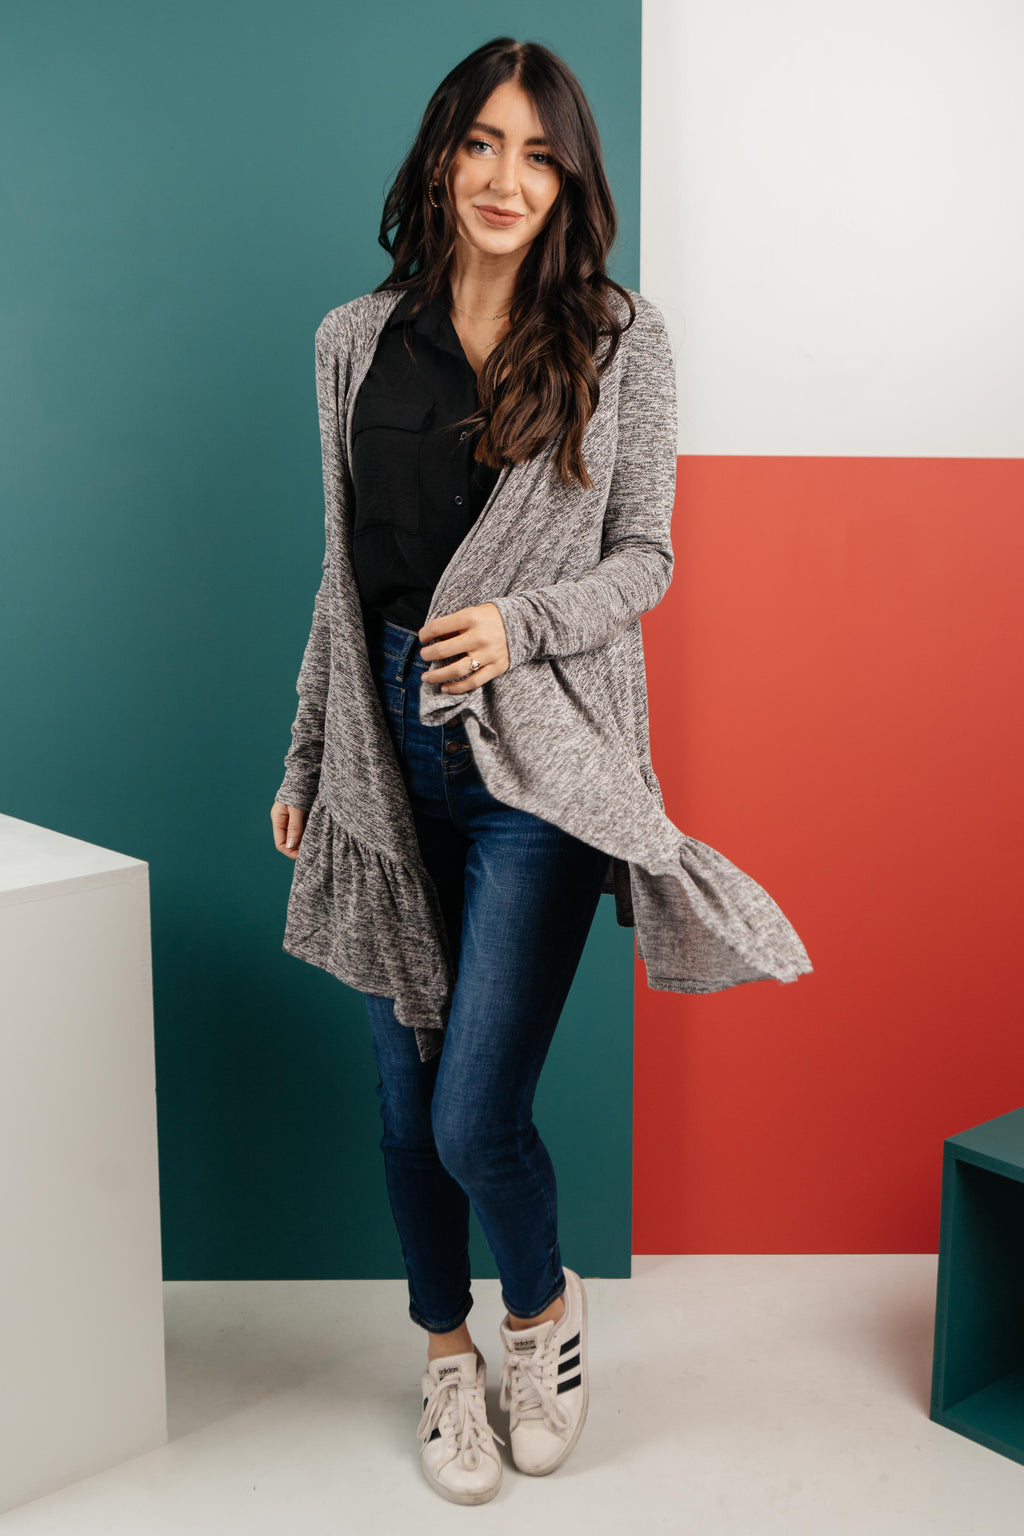 The Avalynn Heathered Cardigan in Smoky Coal-1-5-2021, 1XL, 2XL, 3XL, Group A, Group B, Group C, Group T, Group U, Group X, Group Y, Group Z, Large, Made in the USA, Medium, Small, Tops, XL, XS-Womens Artisan USA American Made Clothing Accessories